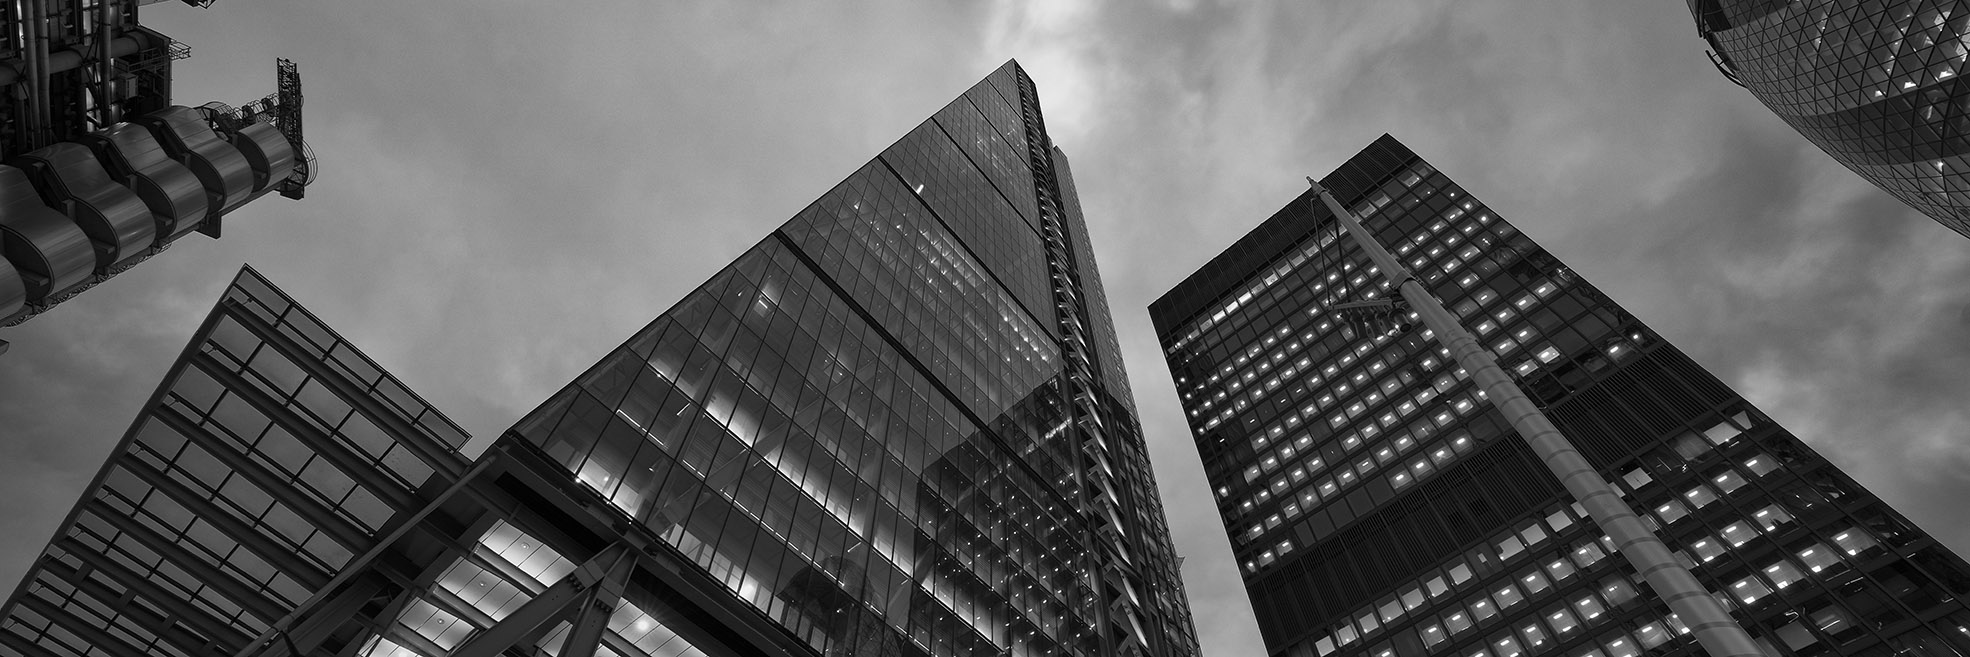 Panoramic black and white picture of City of London skyscrapers